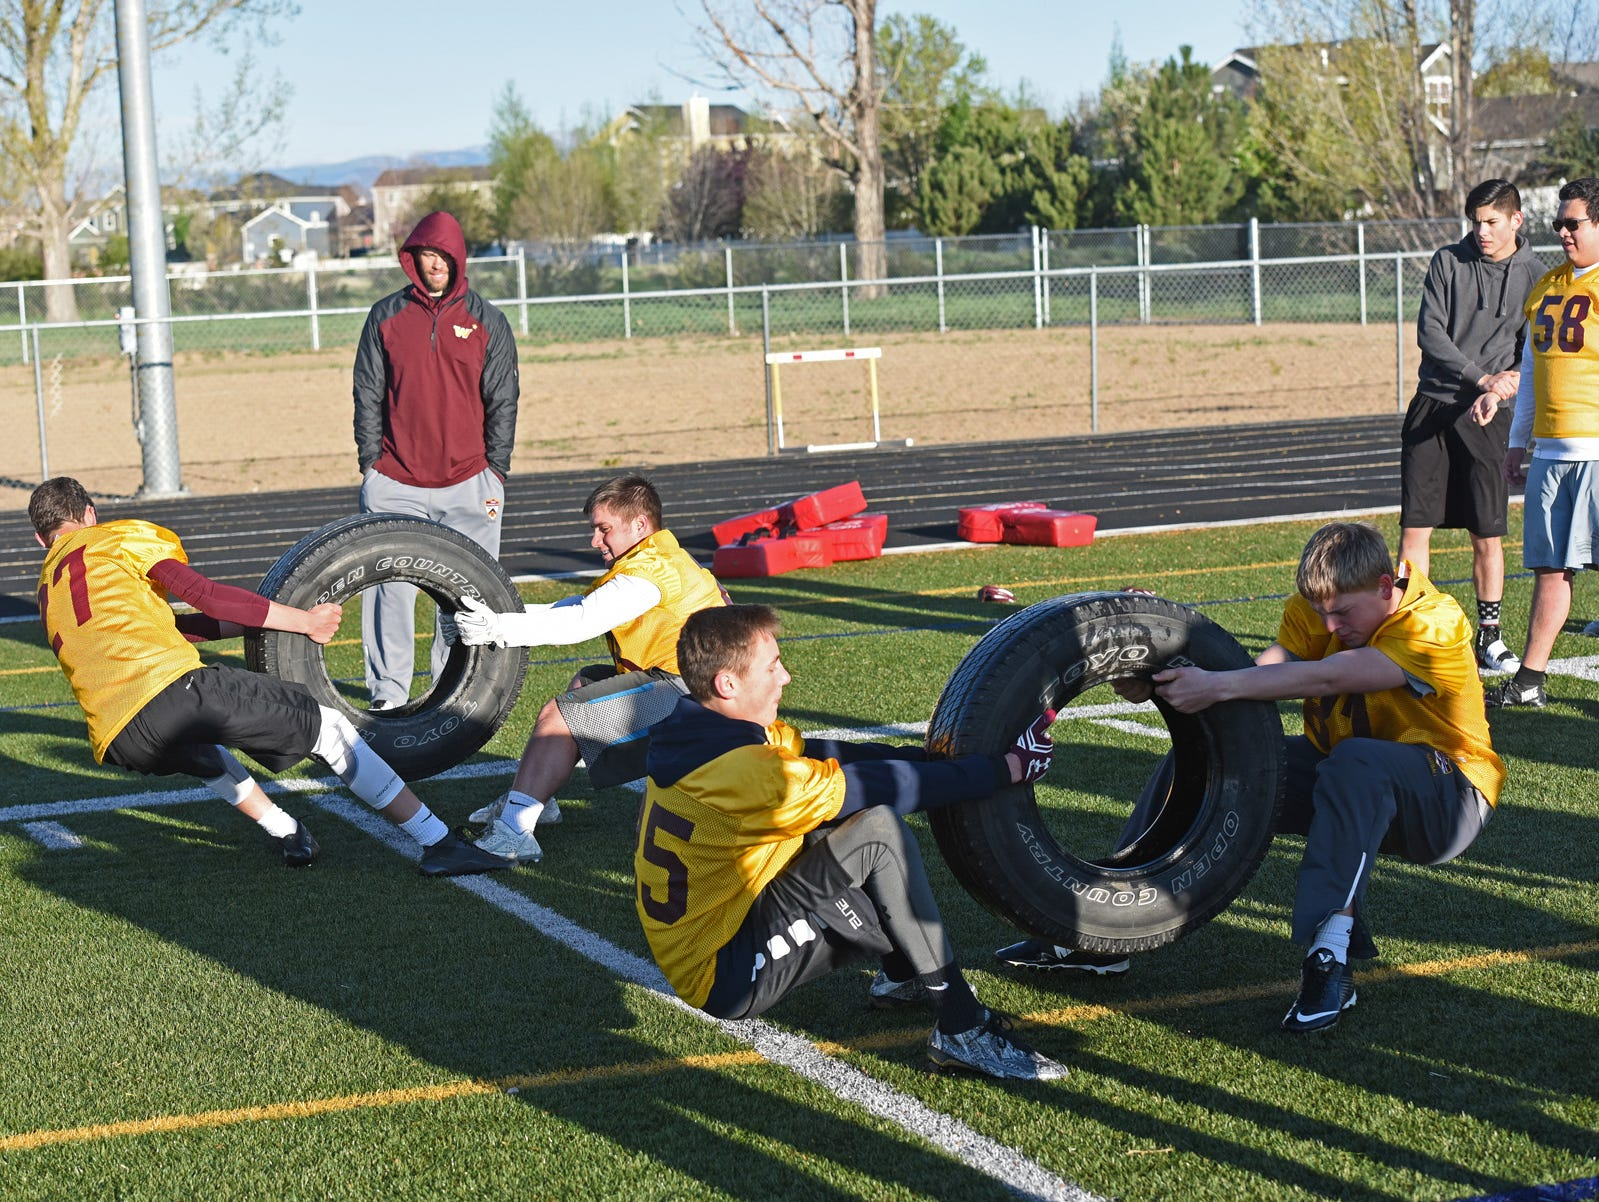 Members of the Windsor High School football team get in an early morning practice Wednesday. The morning practices run from 6:15-7:15 am.